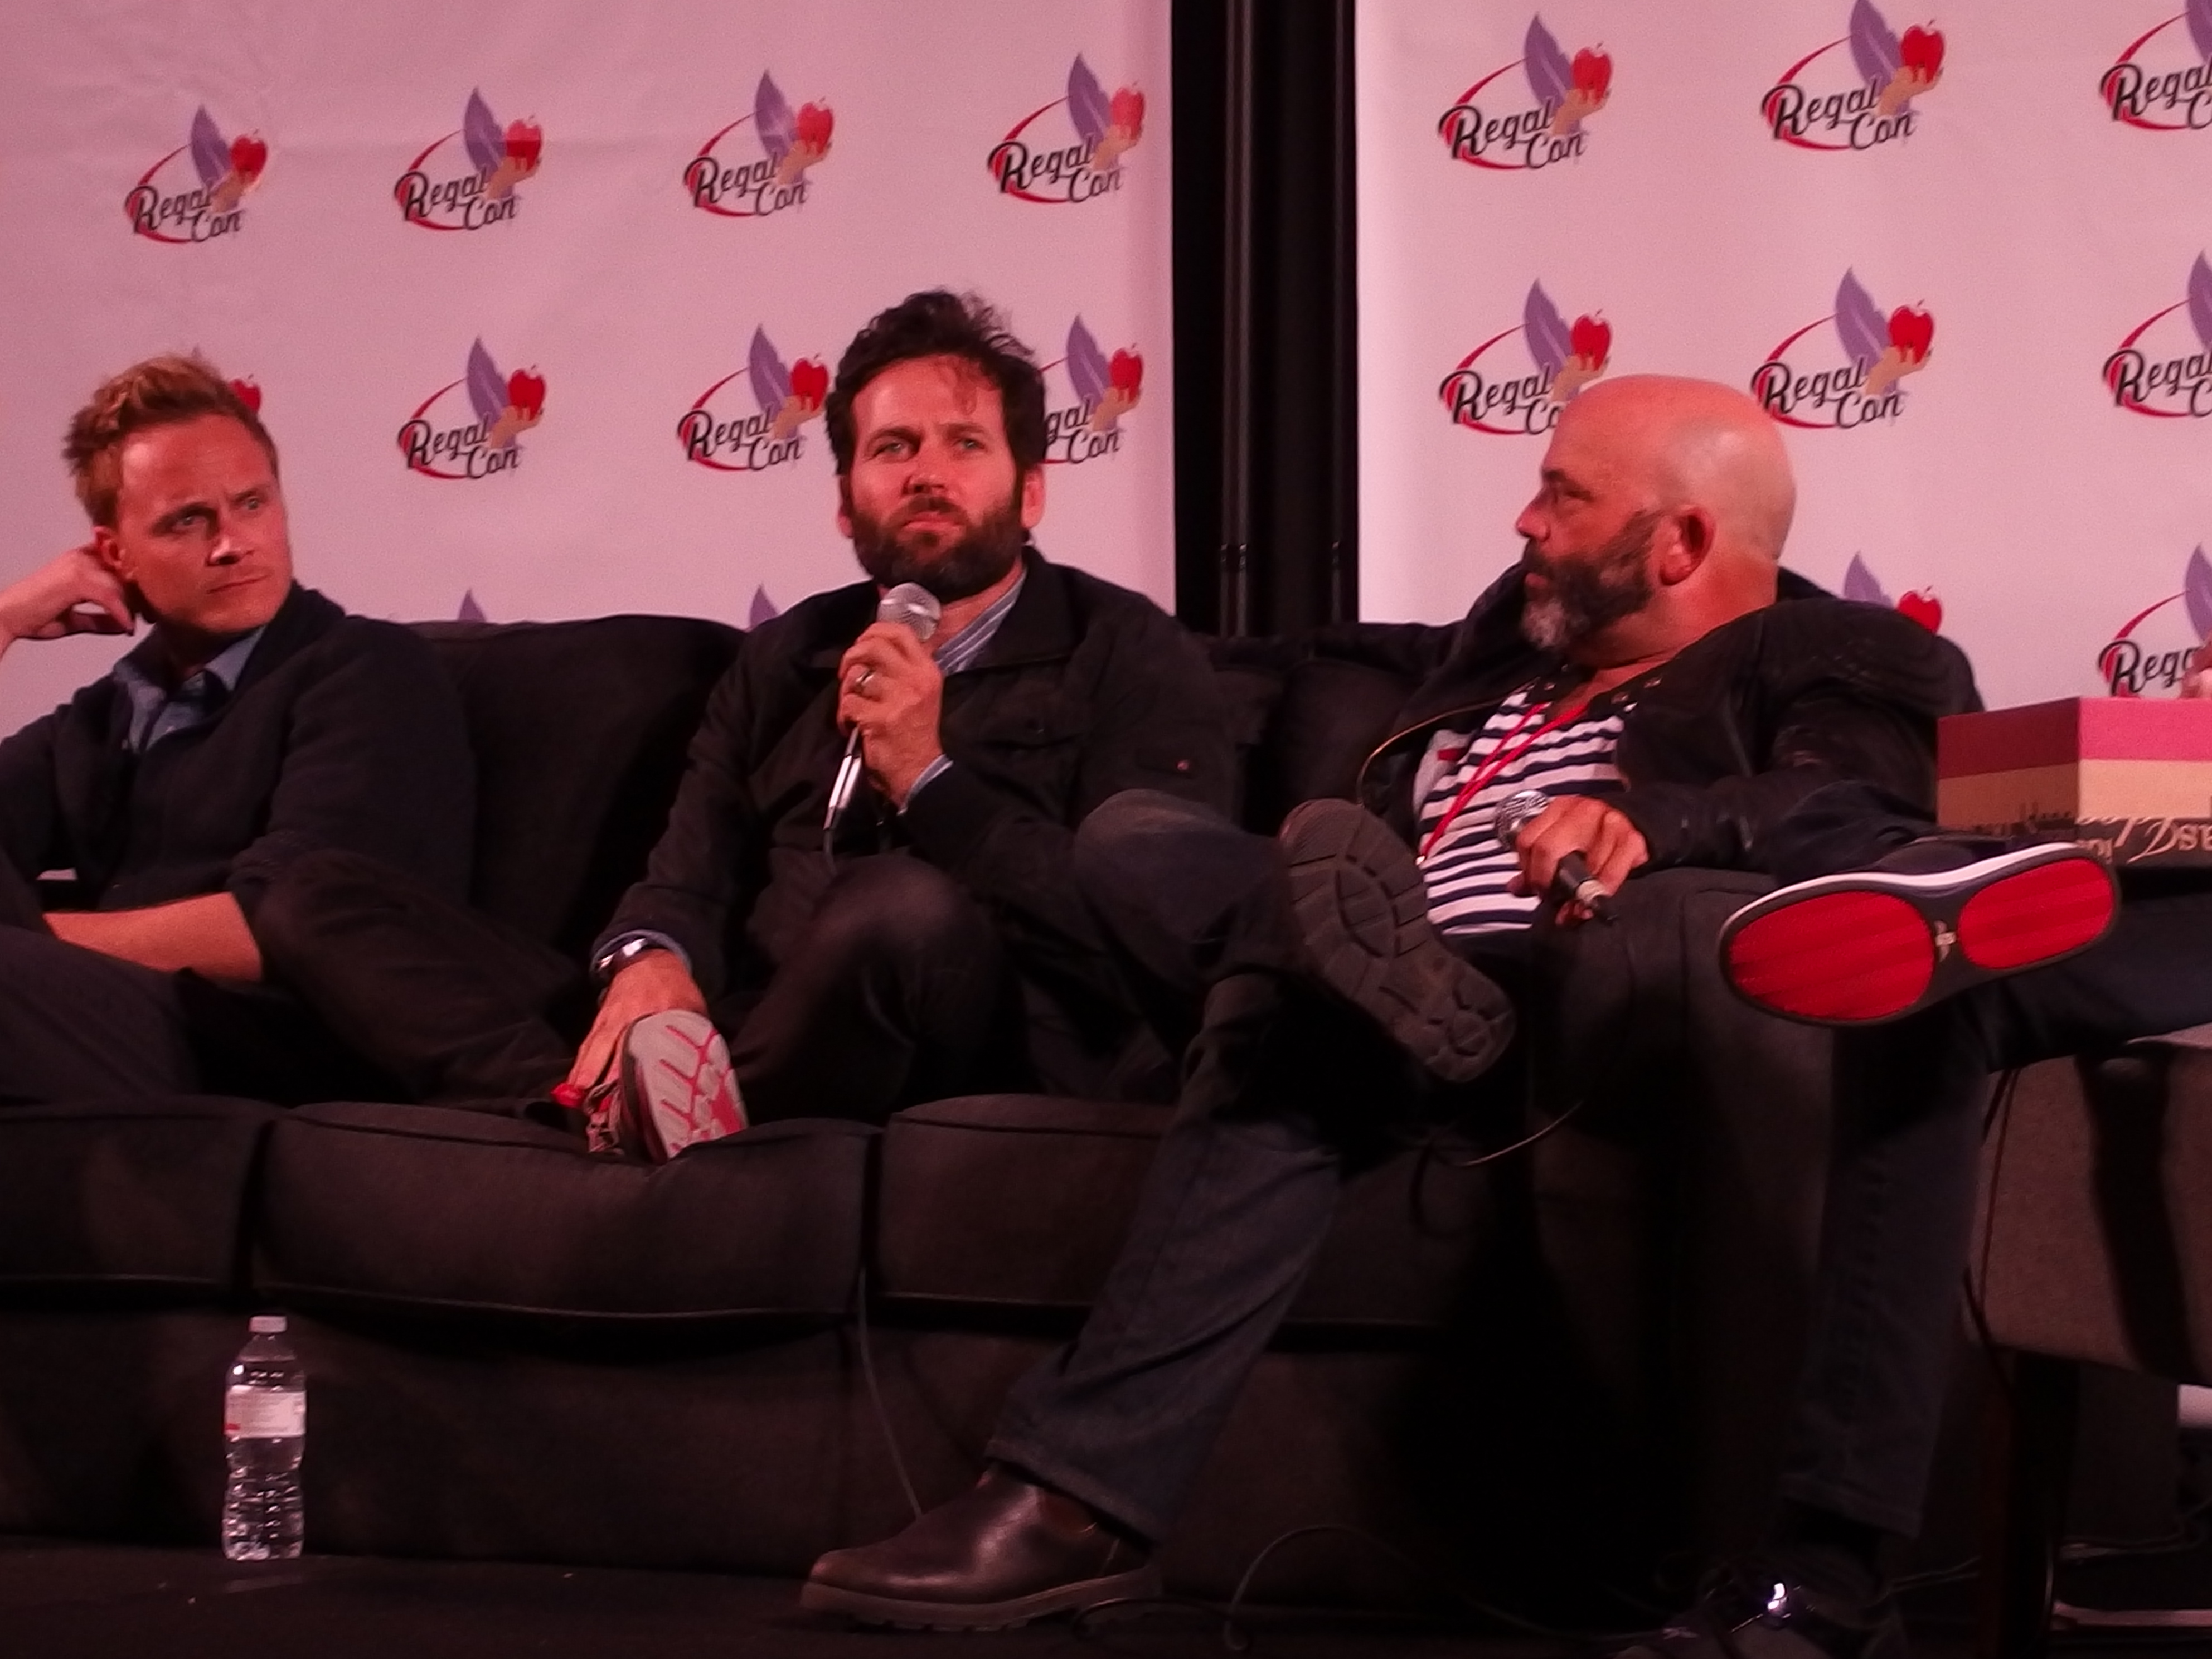 Q&A panel. From left to right, David Anders, Eion Bailey, and Lee Arenberg